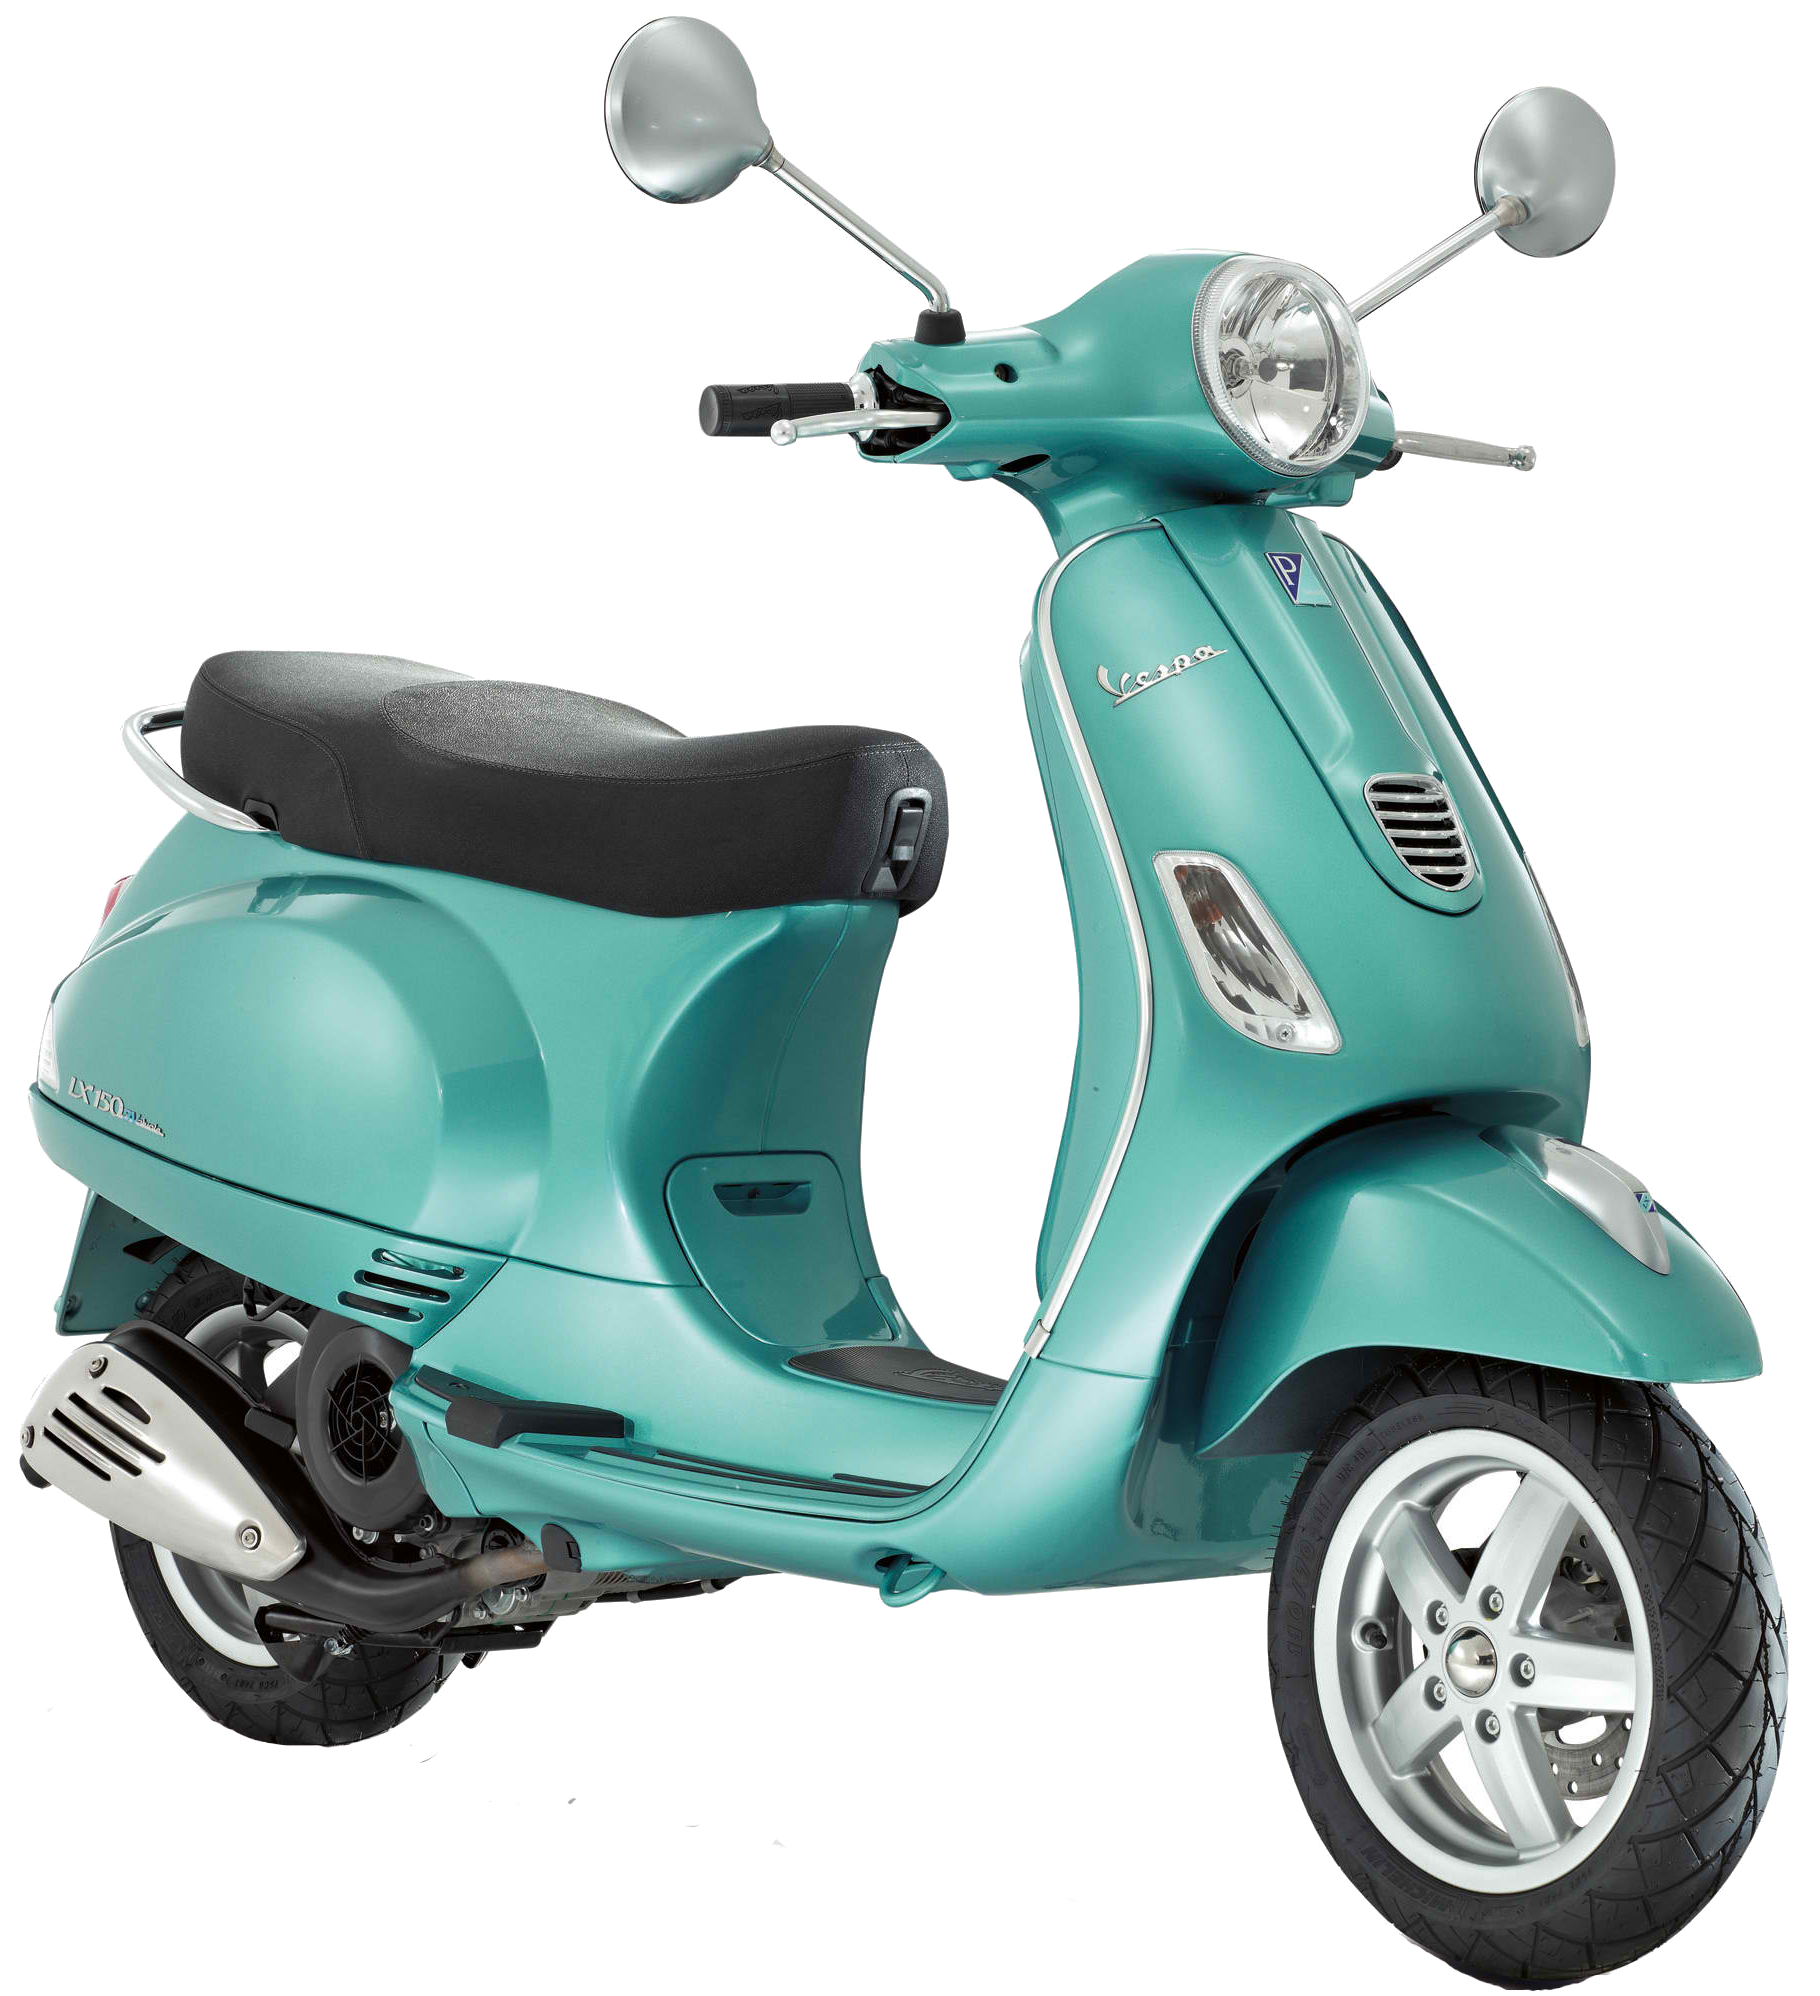 Scooter HD PNG - 120101